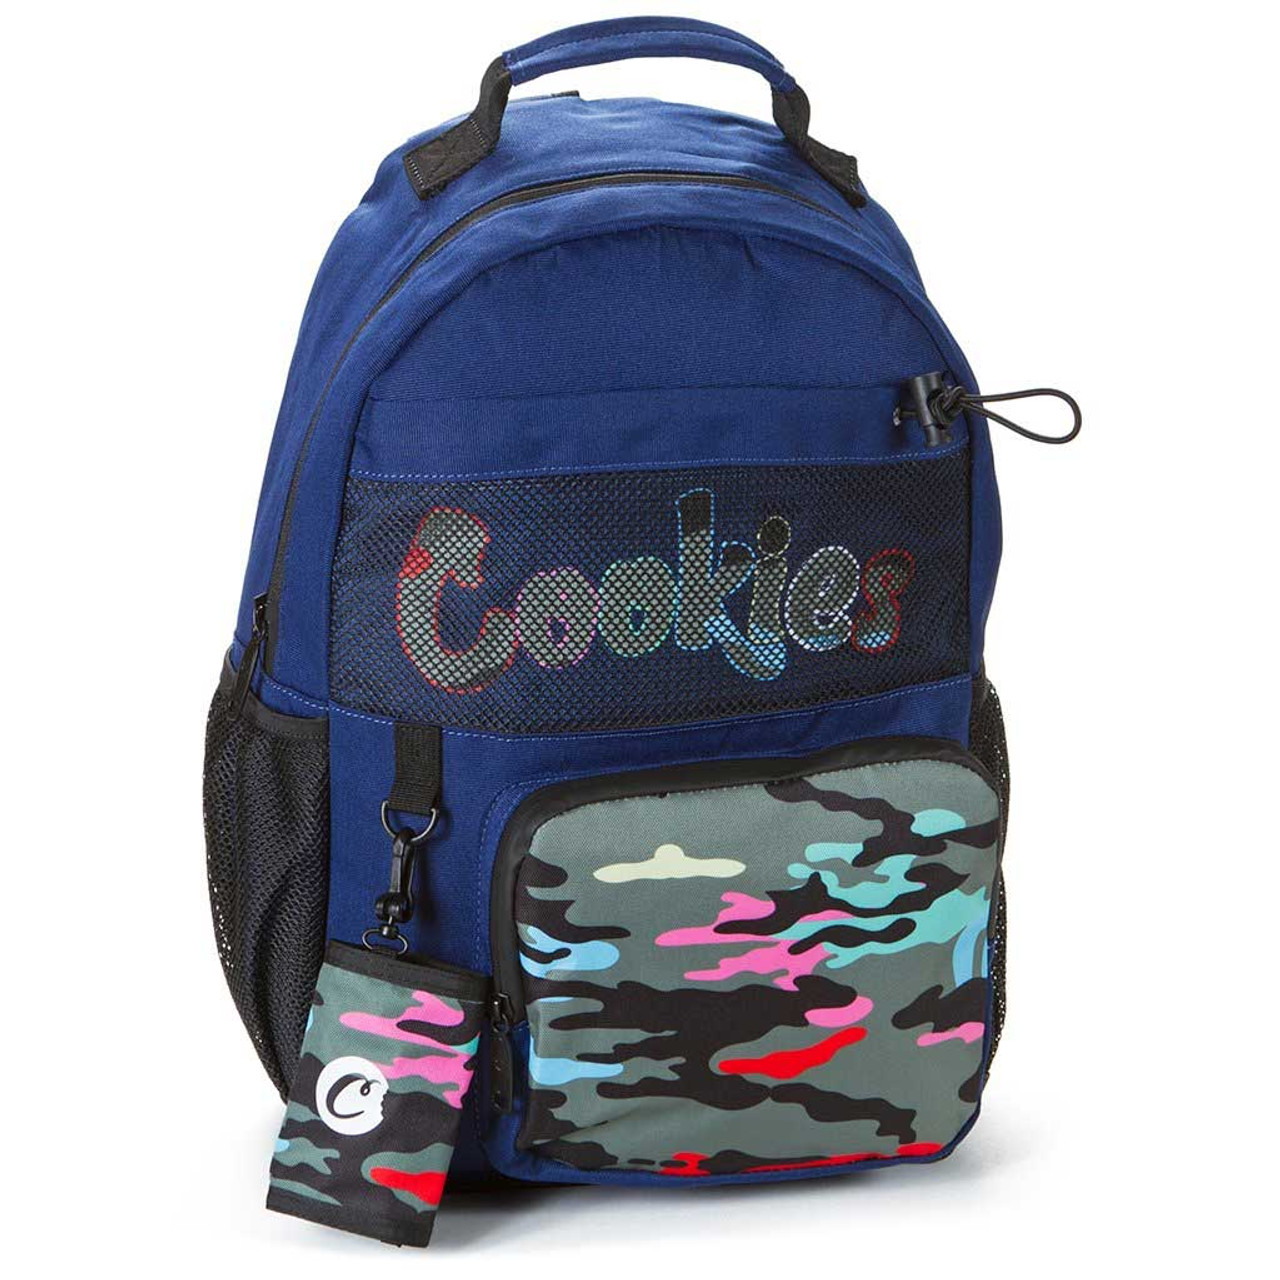 Cookies X Escobar Smell Proof Backpack